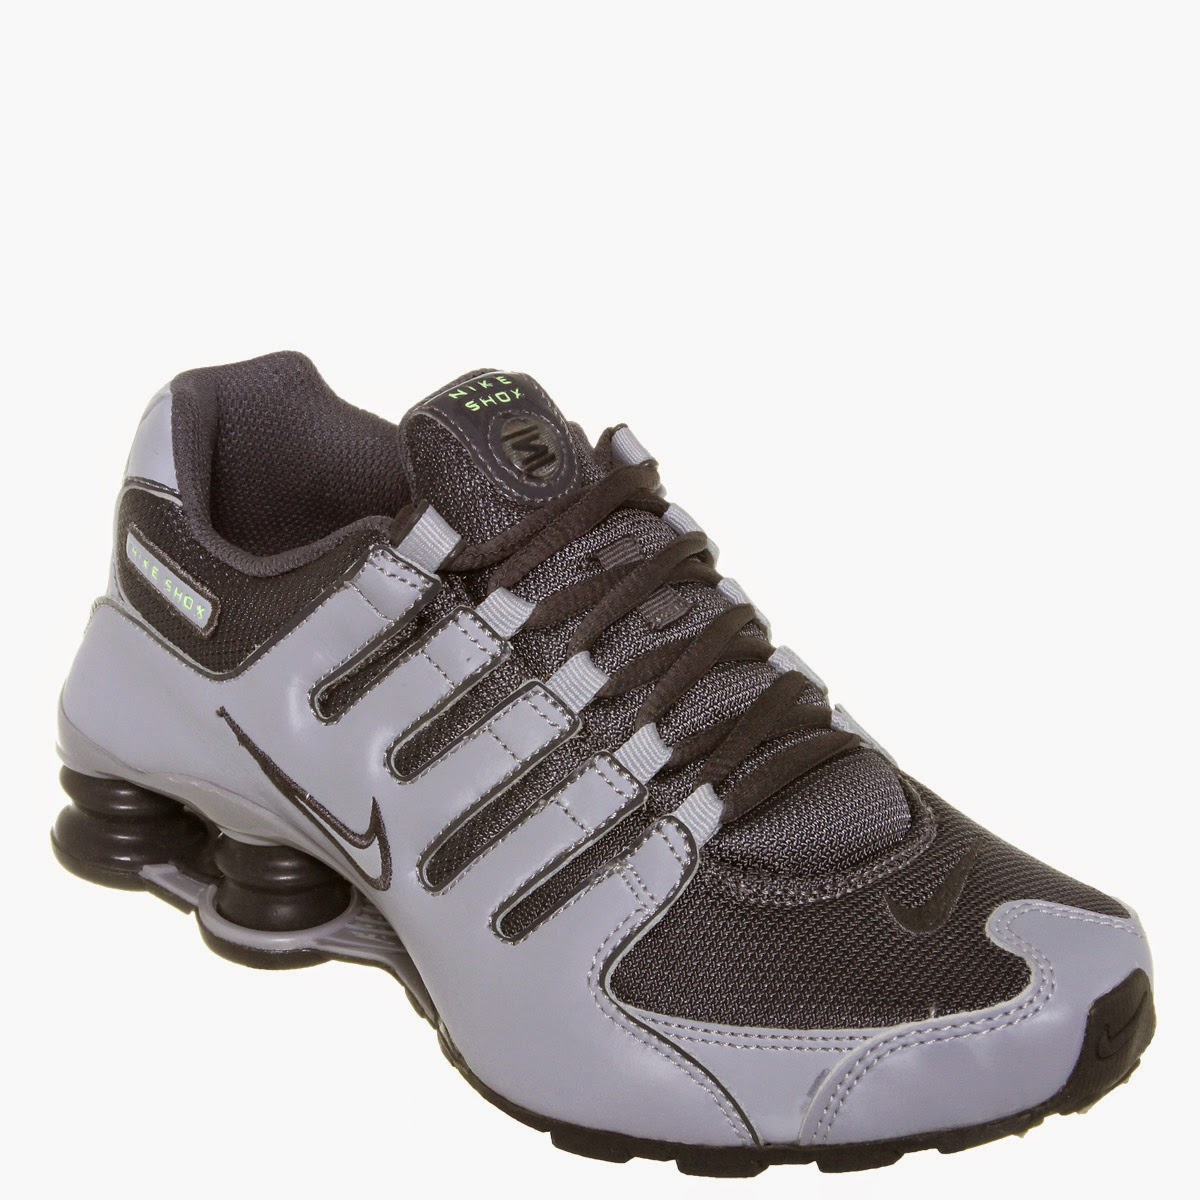 60d453304 The Nike Greatest Products  Nike Shox Plus Cinza World Tennis ...